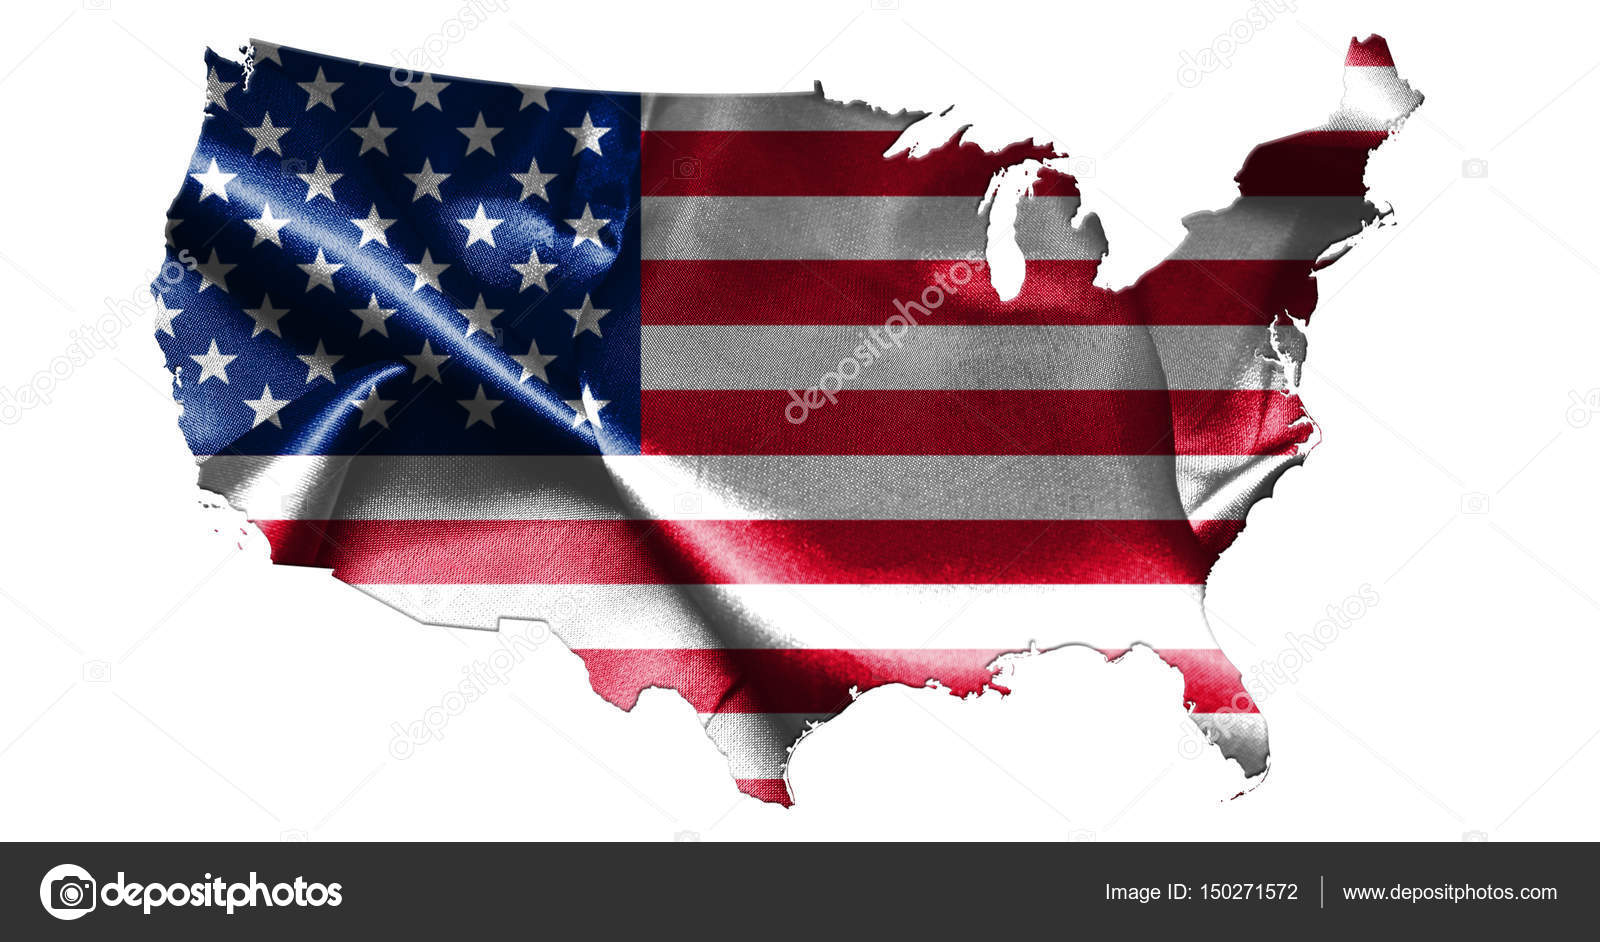 United States Of America Map With American Flag 3d Illustration - American-flag-us-map